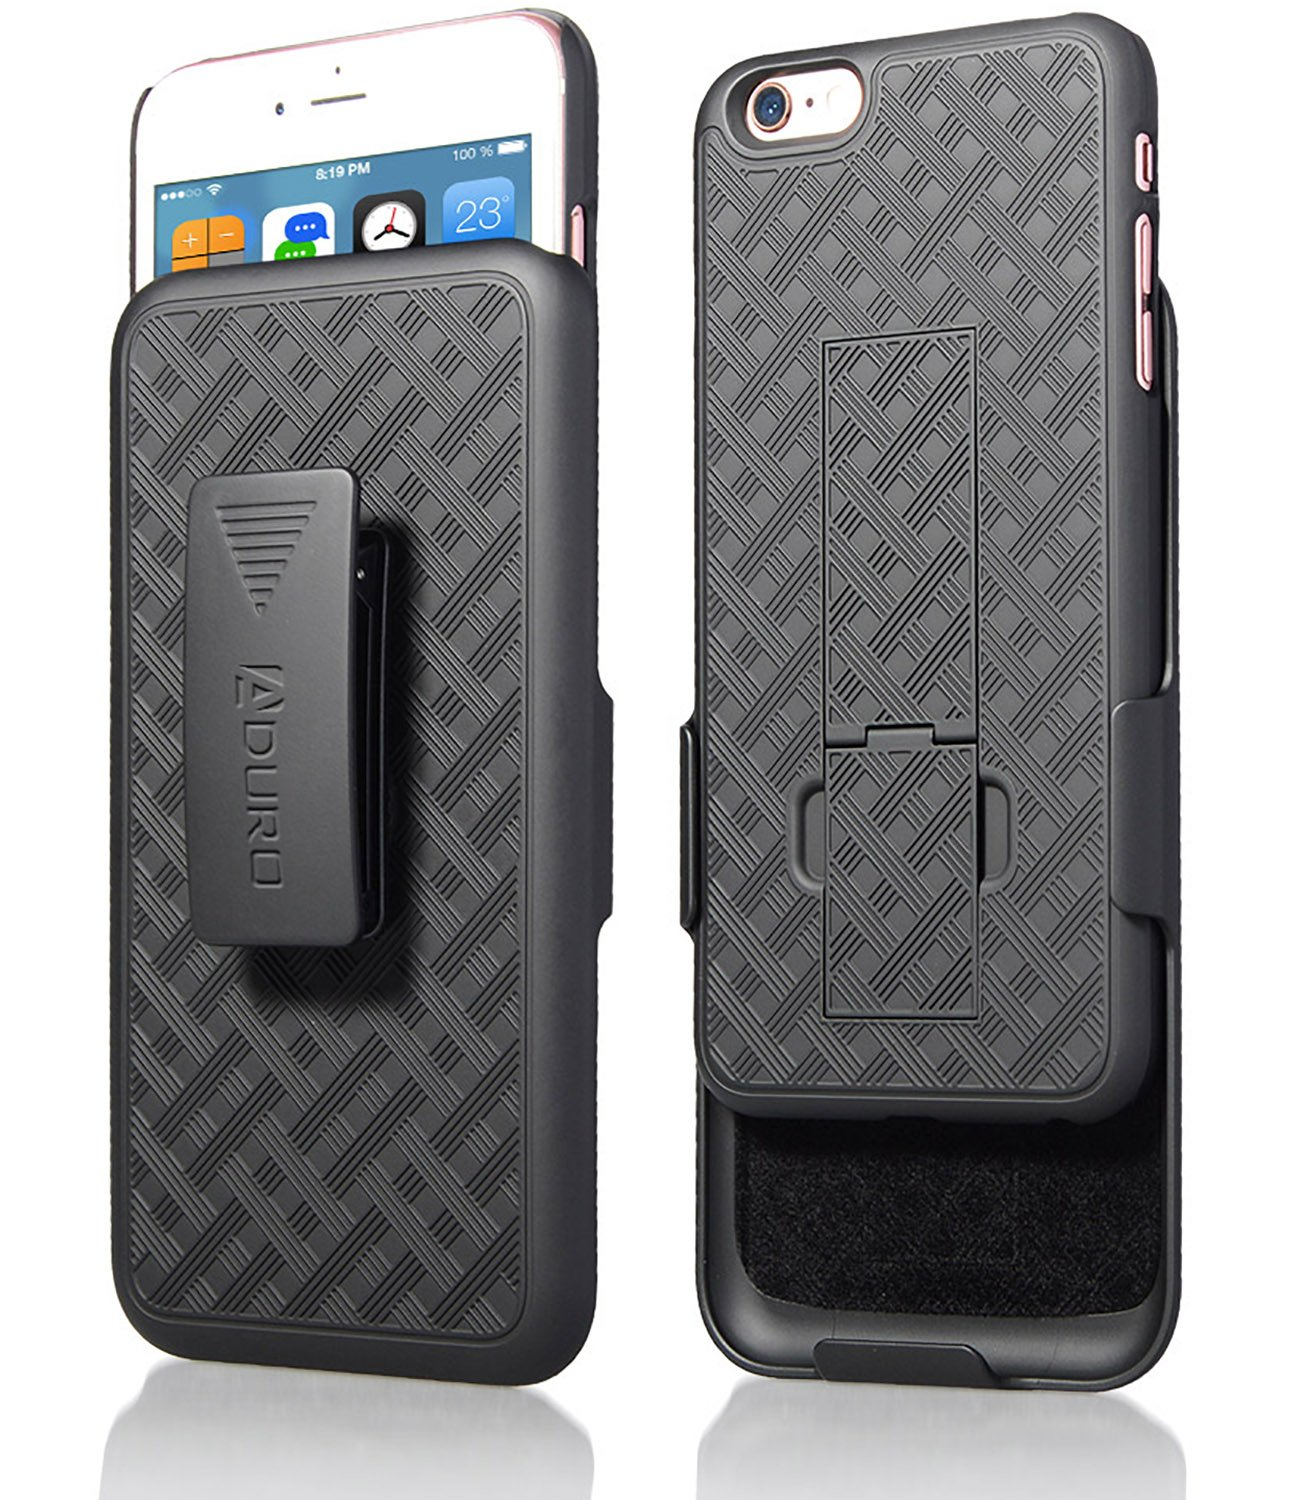 iPhone 6S Plus / 6 Plus (ONLY) Case, Aduro COMBO Shell & Holster Case Super Slim Shell Case w/ Built-In Kickstand + Swivel Belt Clip Holster for Apple iPhone 6S Plus / 6 Plus by Aduro